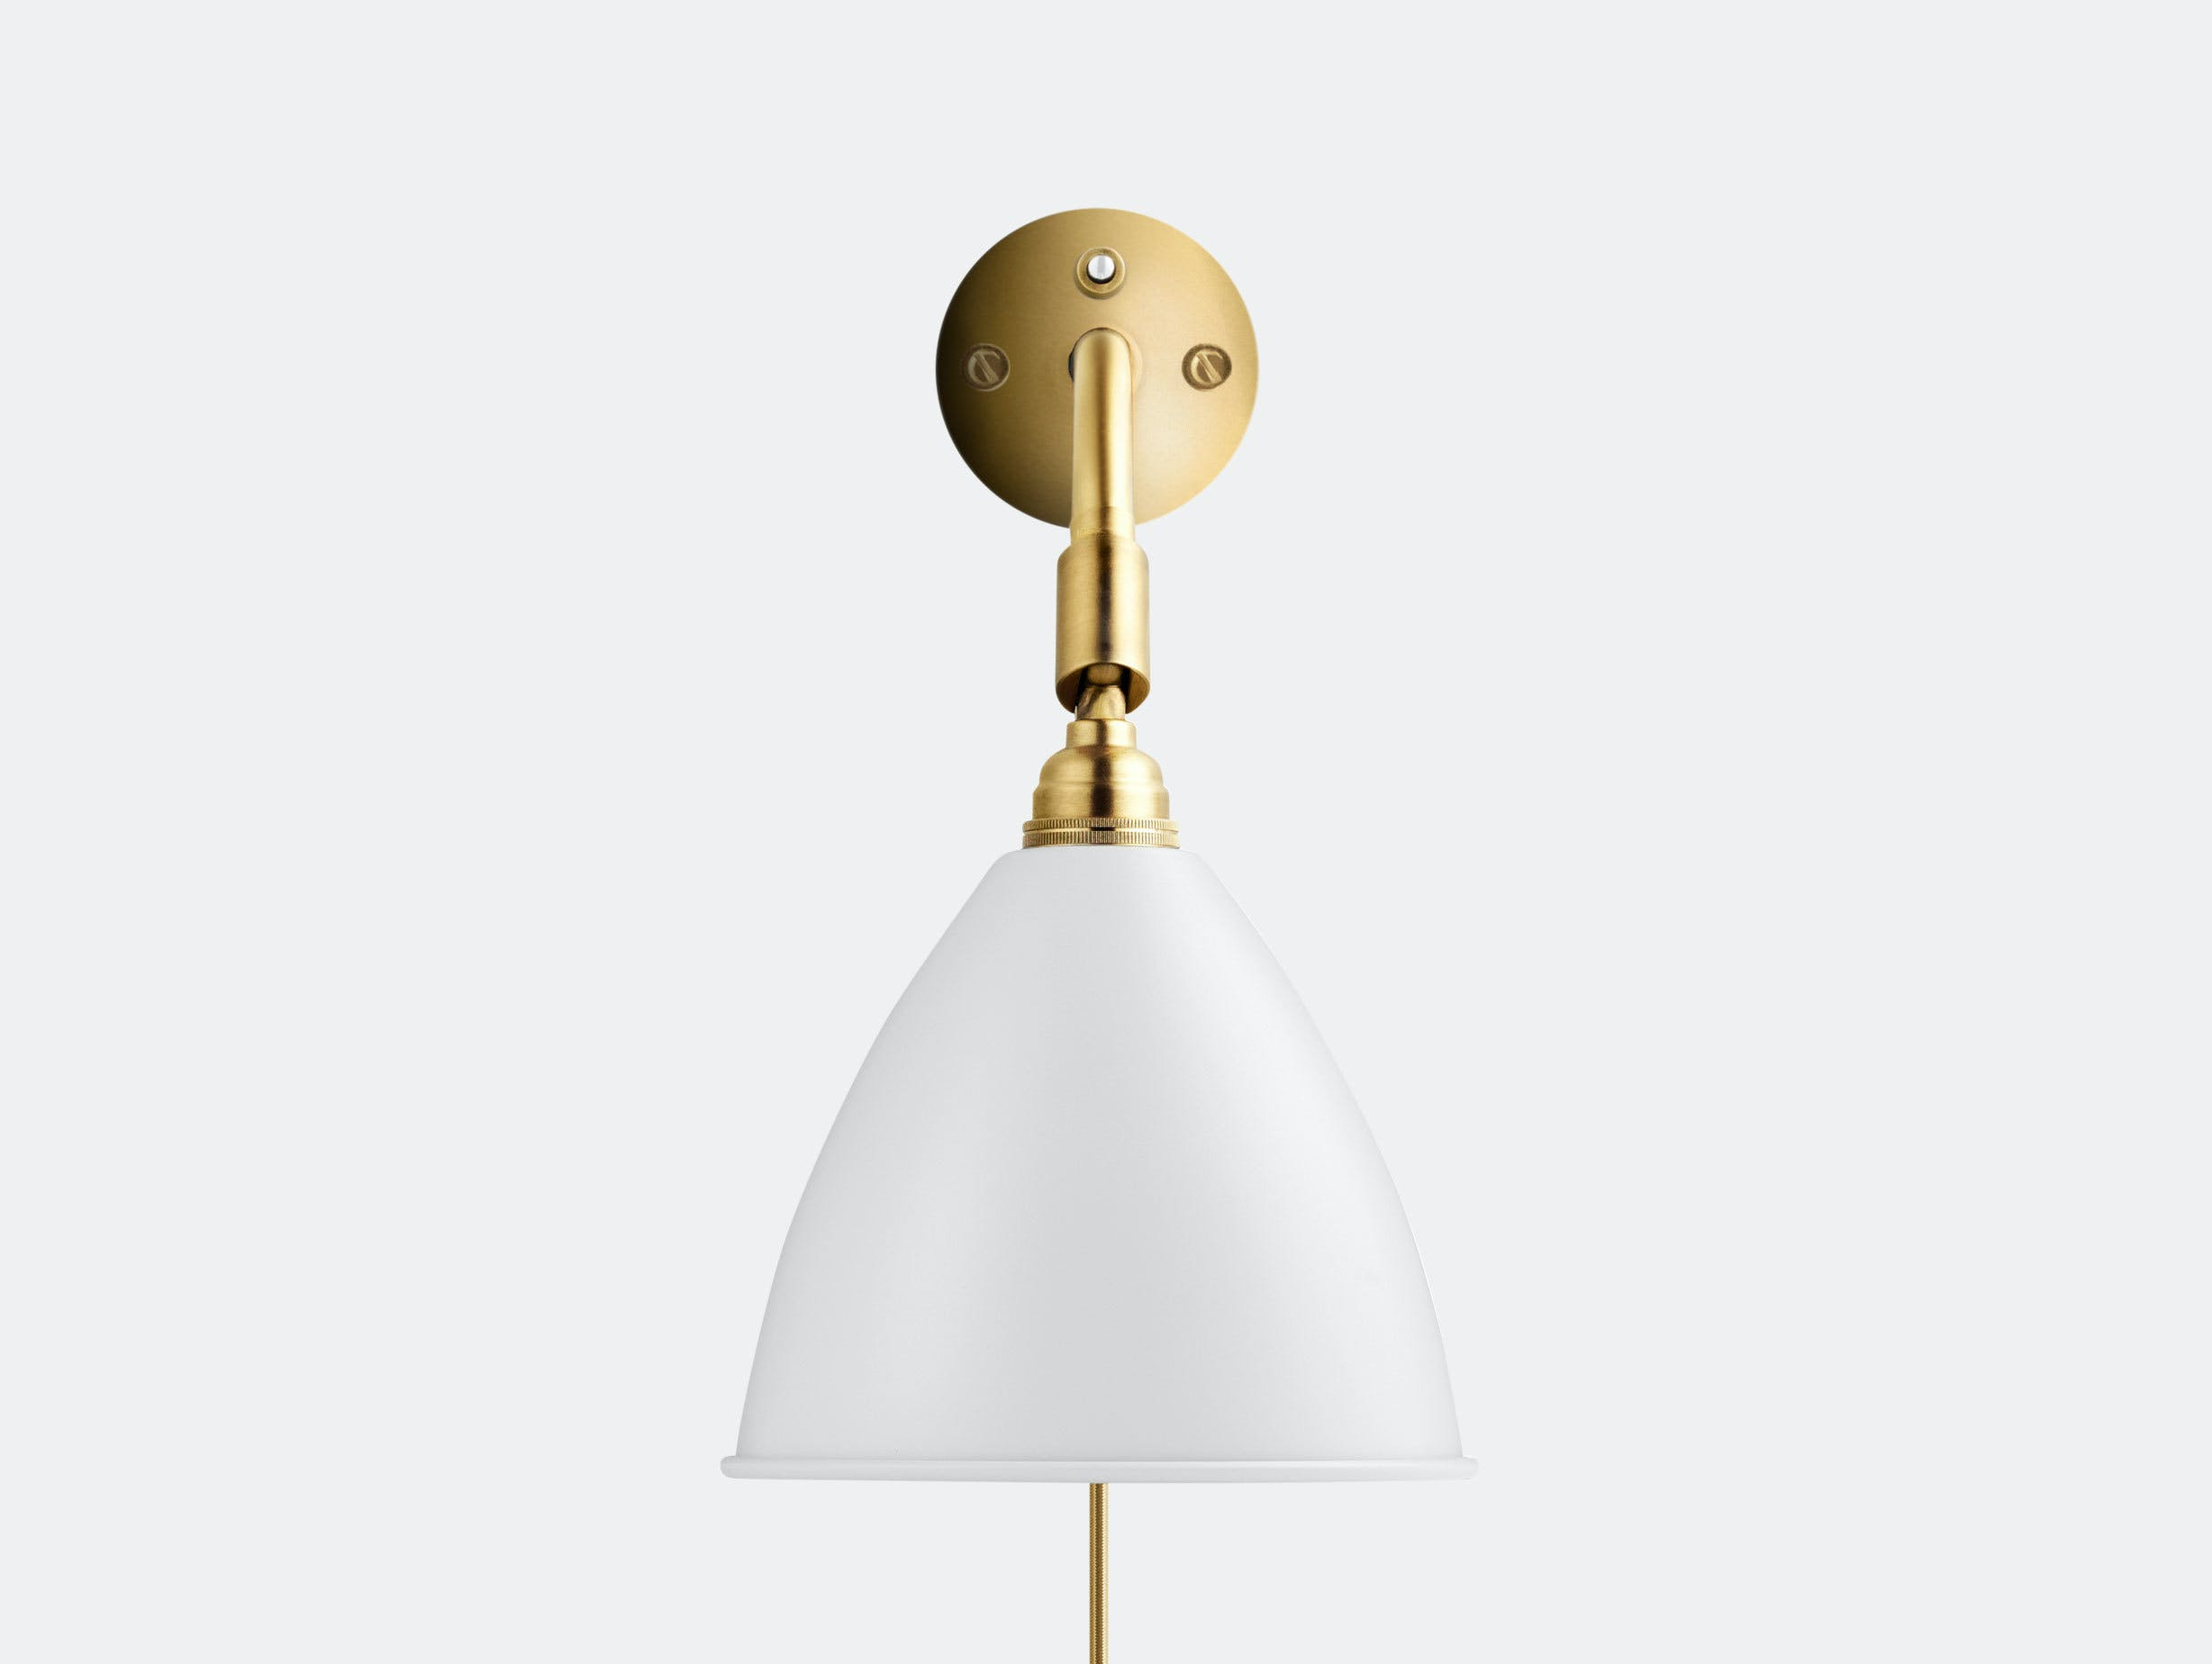 Gubi Bl7 Bestlite Wall Lamp Brass White Robert Dudley Best